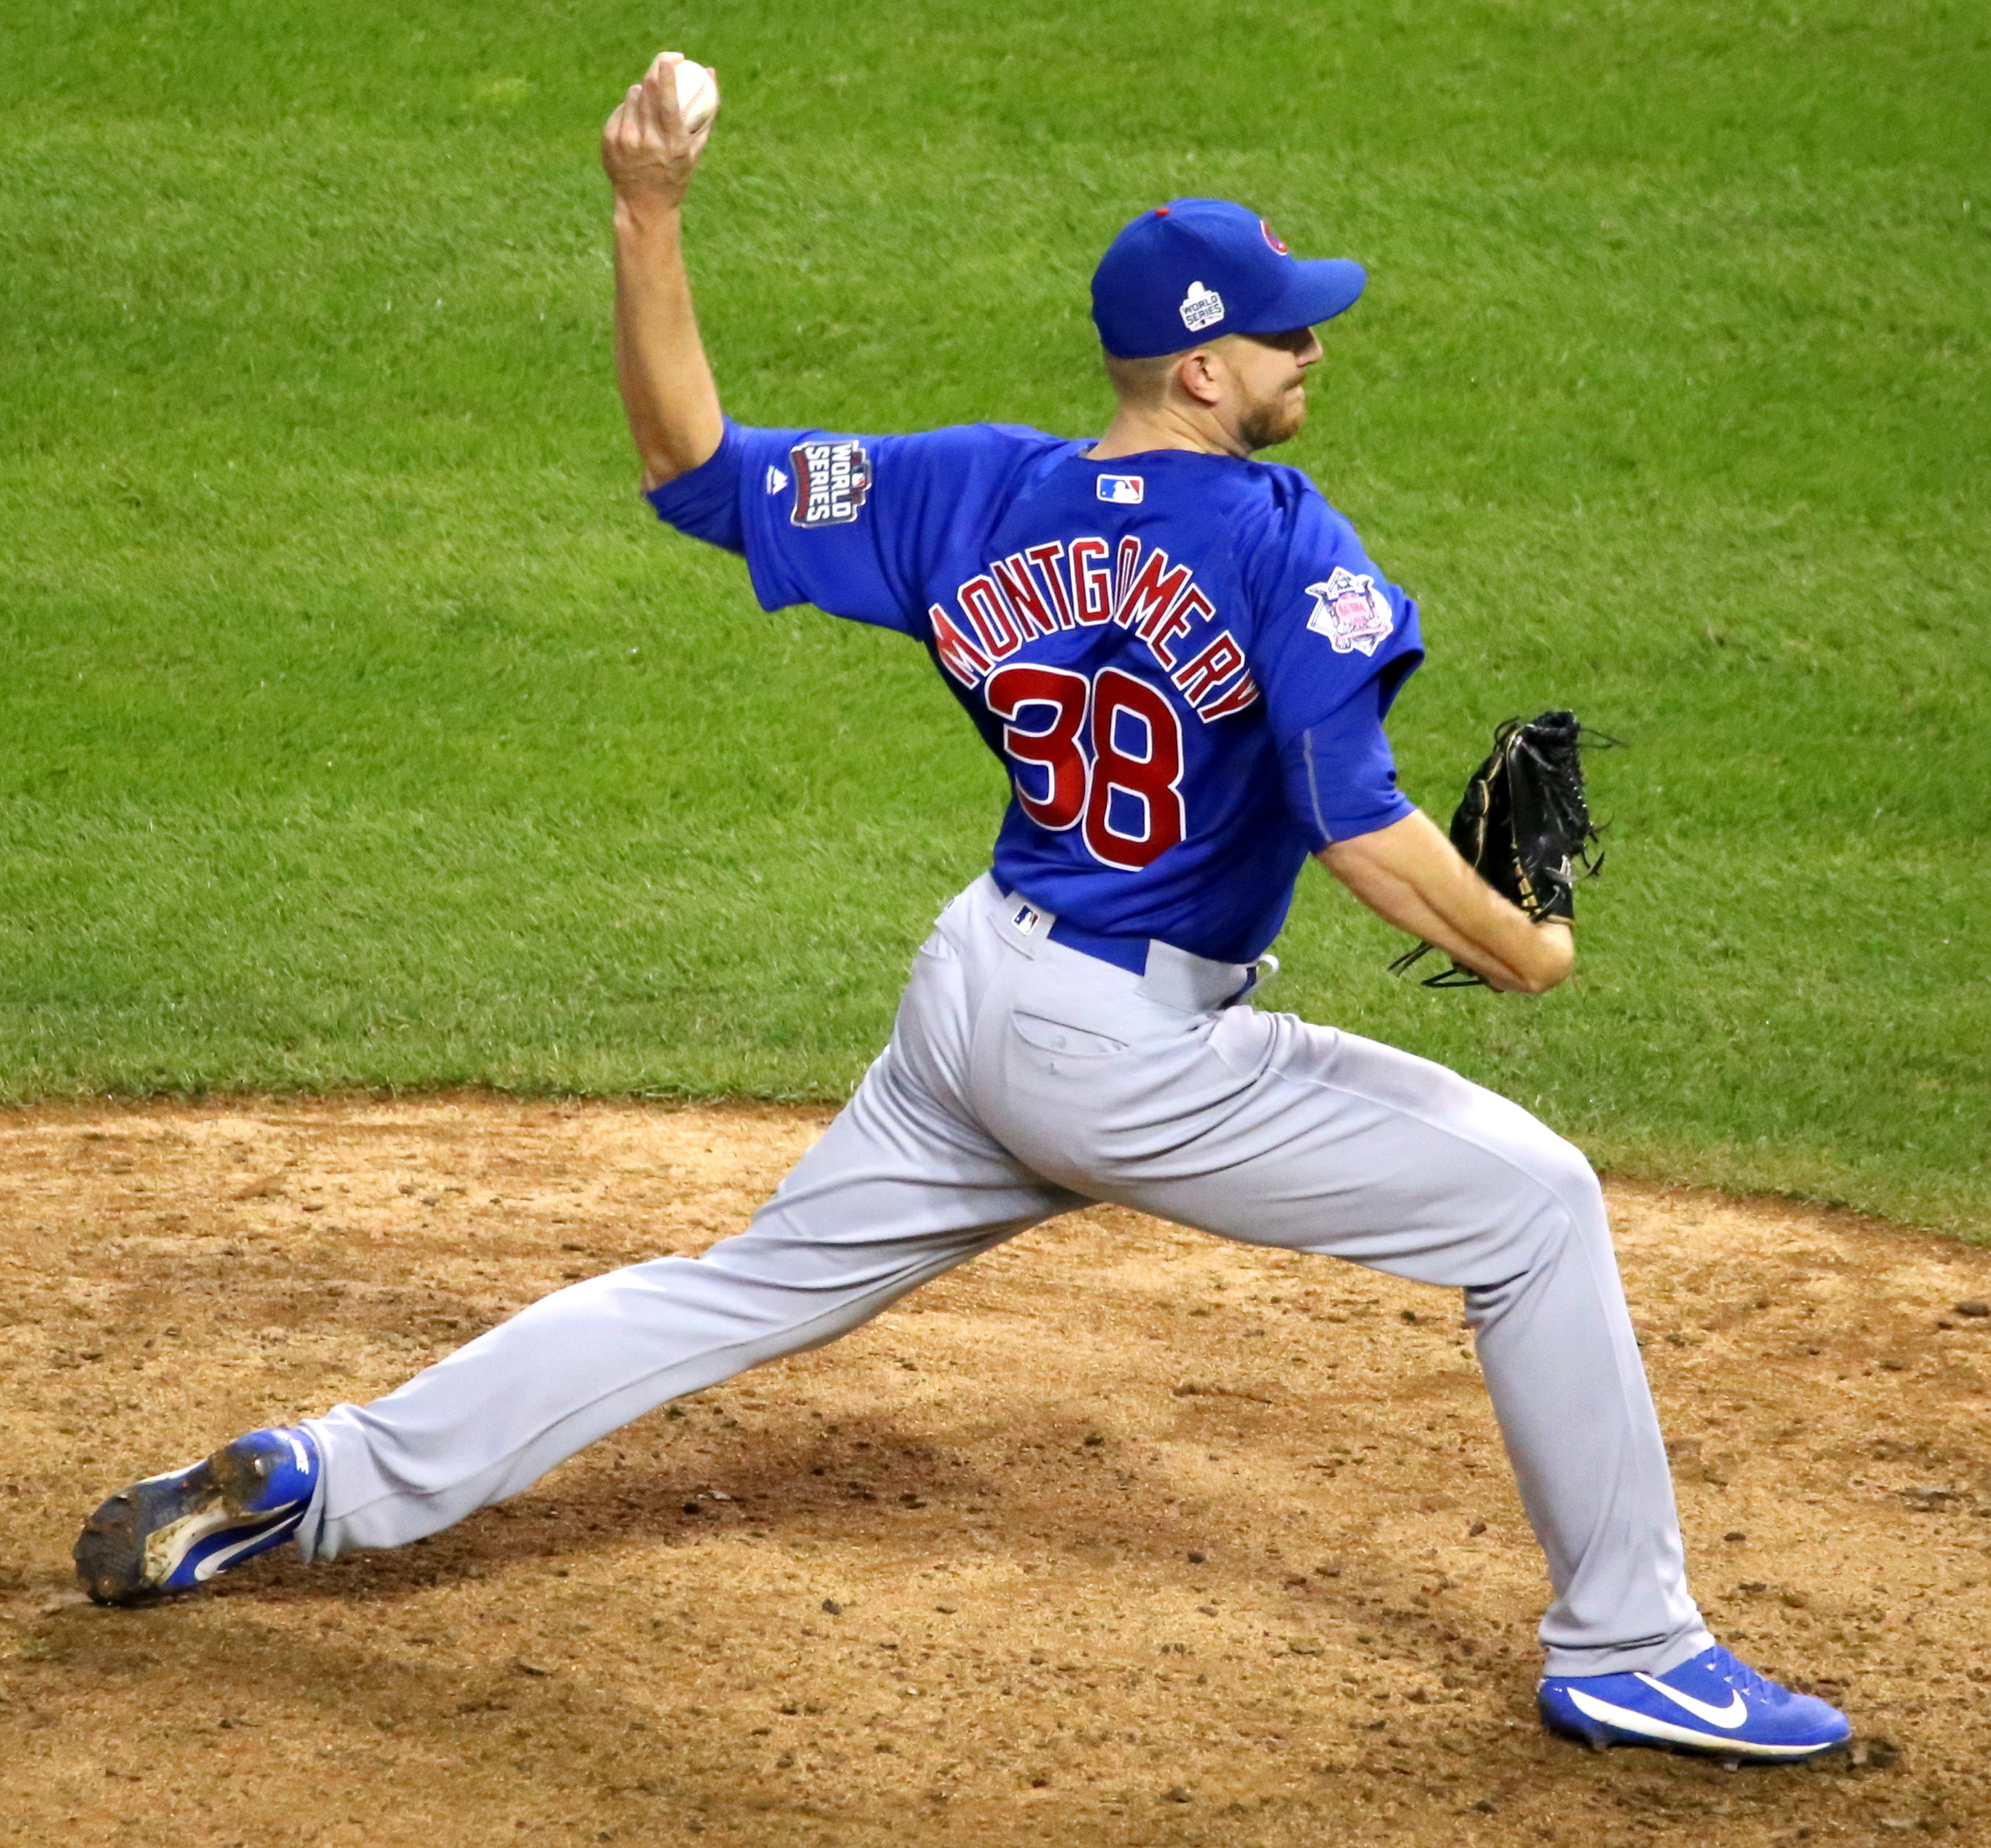 Mike Fiers In World Series: File:Cubs Reliever Mike Montgomery Delivers A Pitch In The